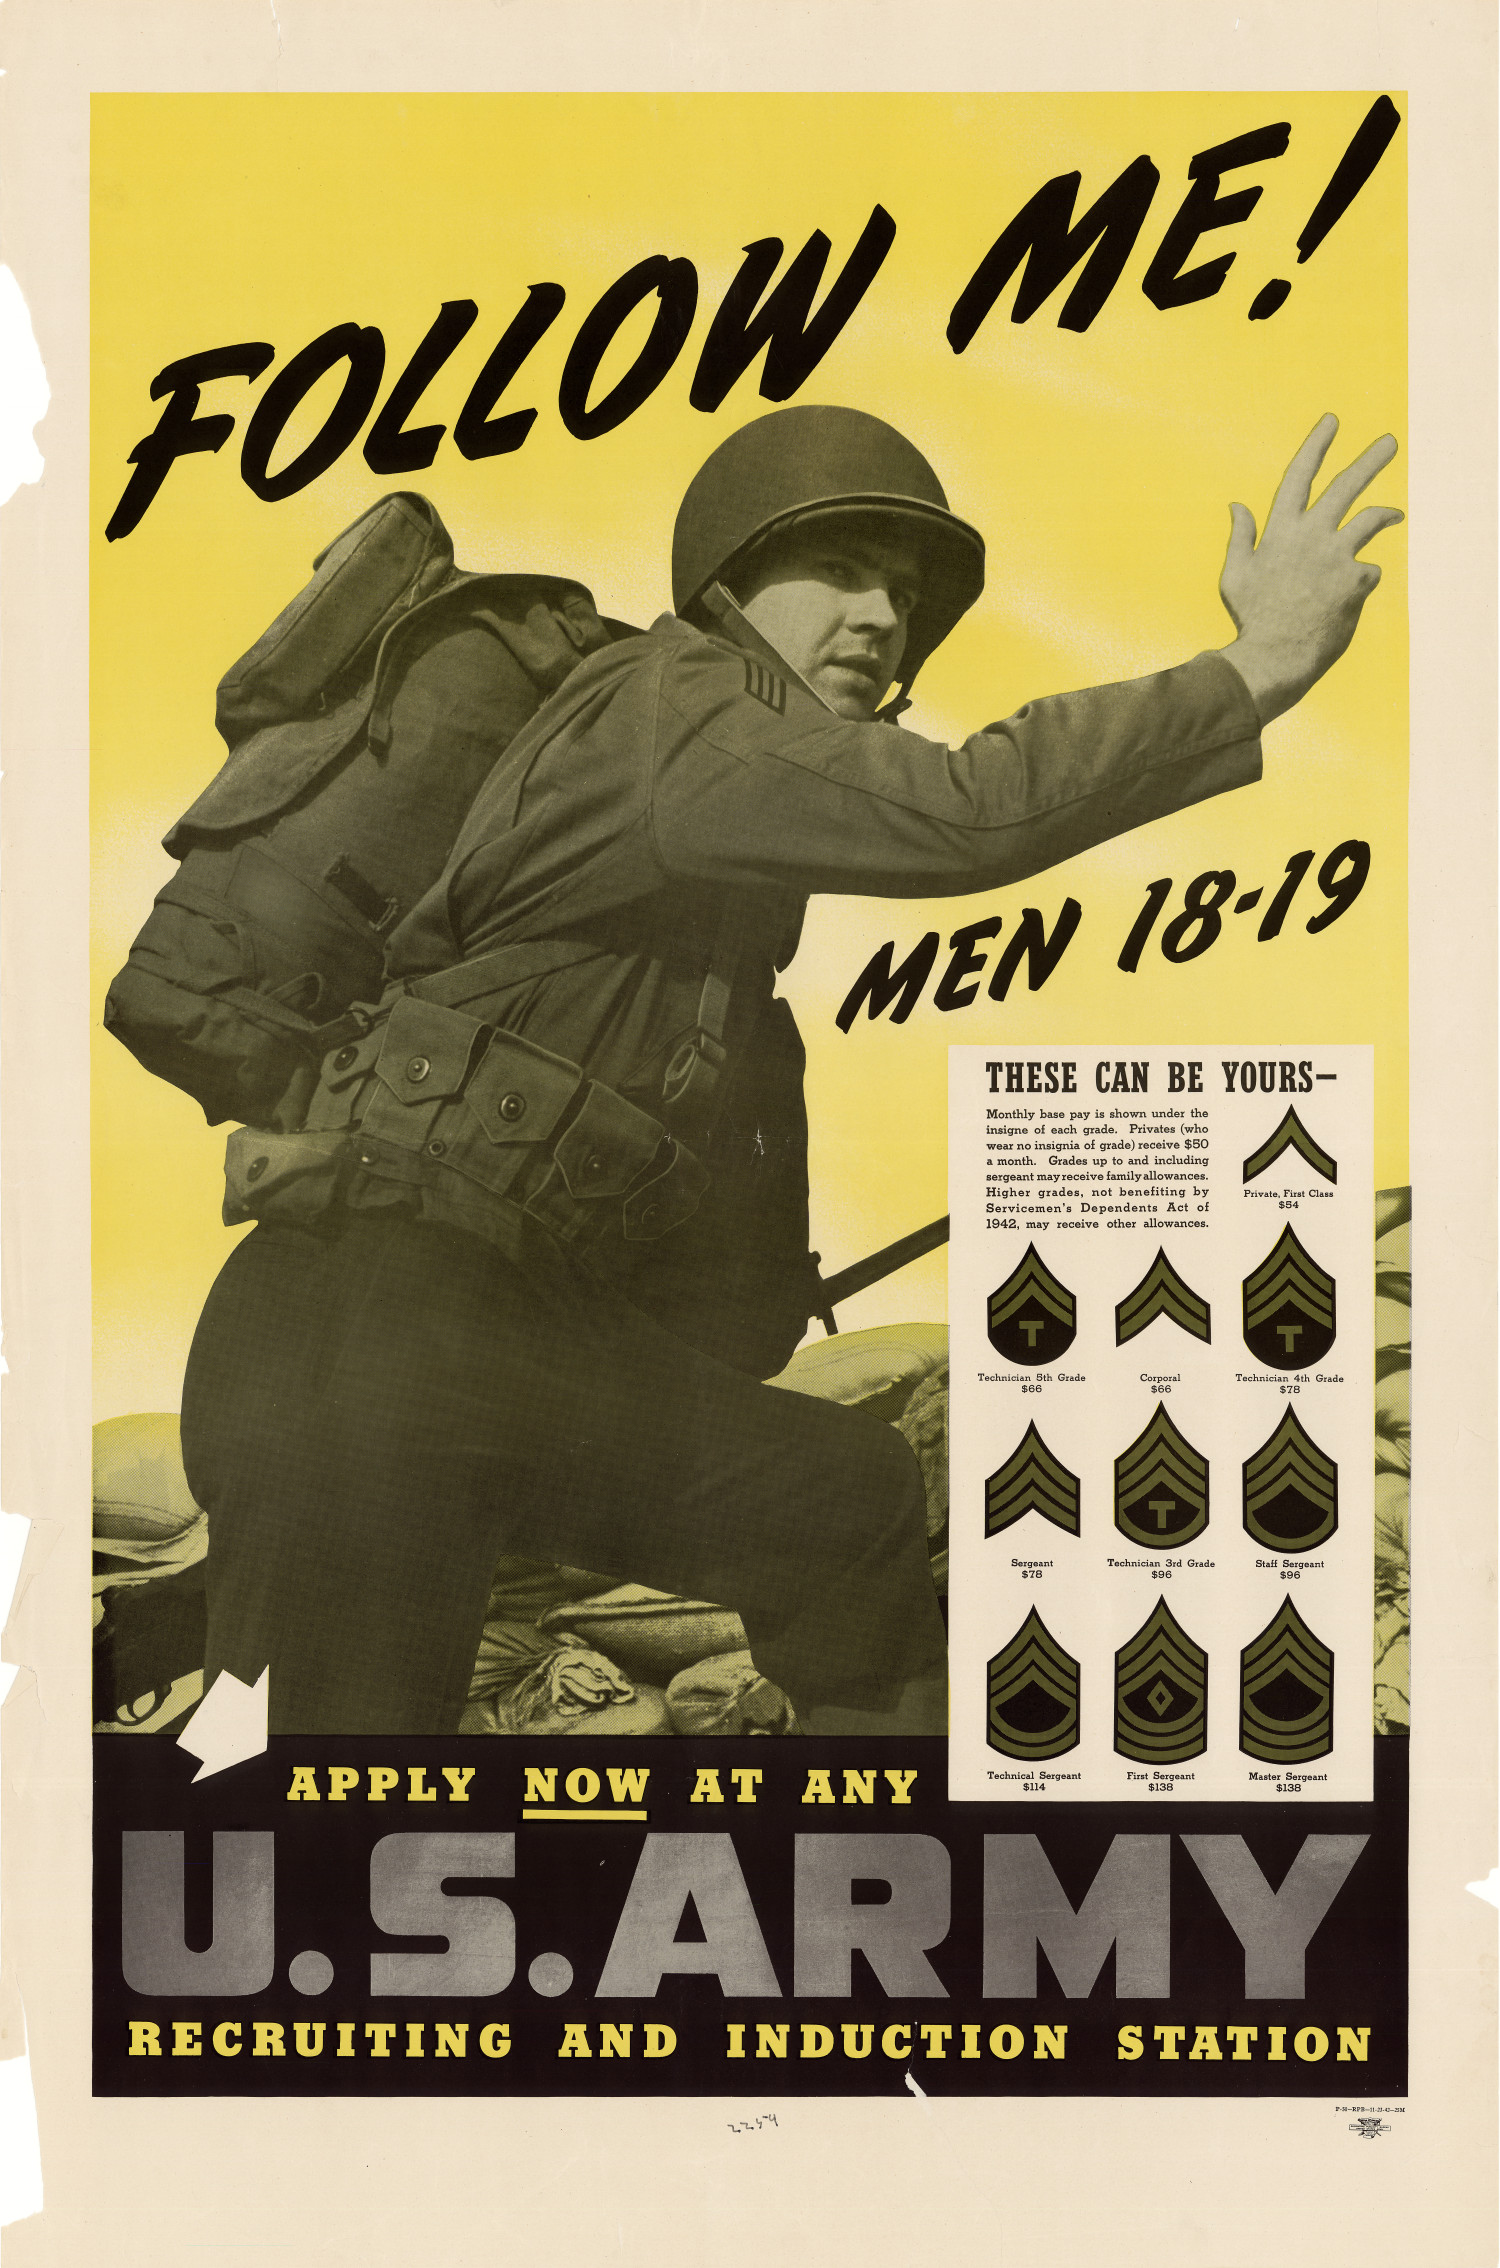 Follow me men 18 19 these can be yours apply now at any u s army recruiting and induction station digital library